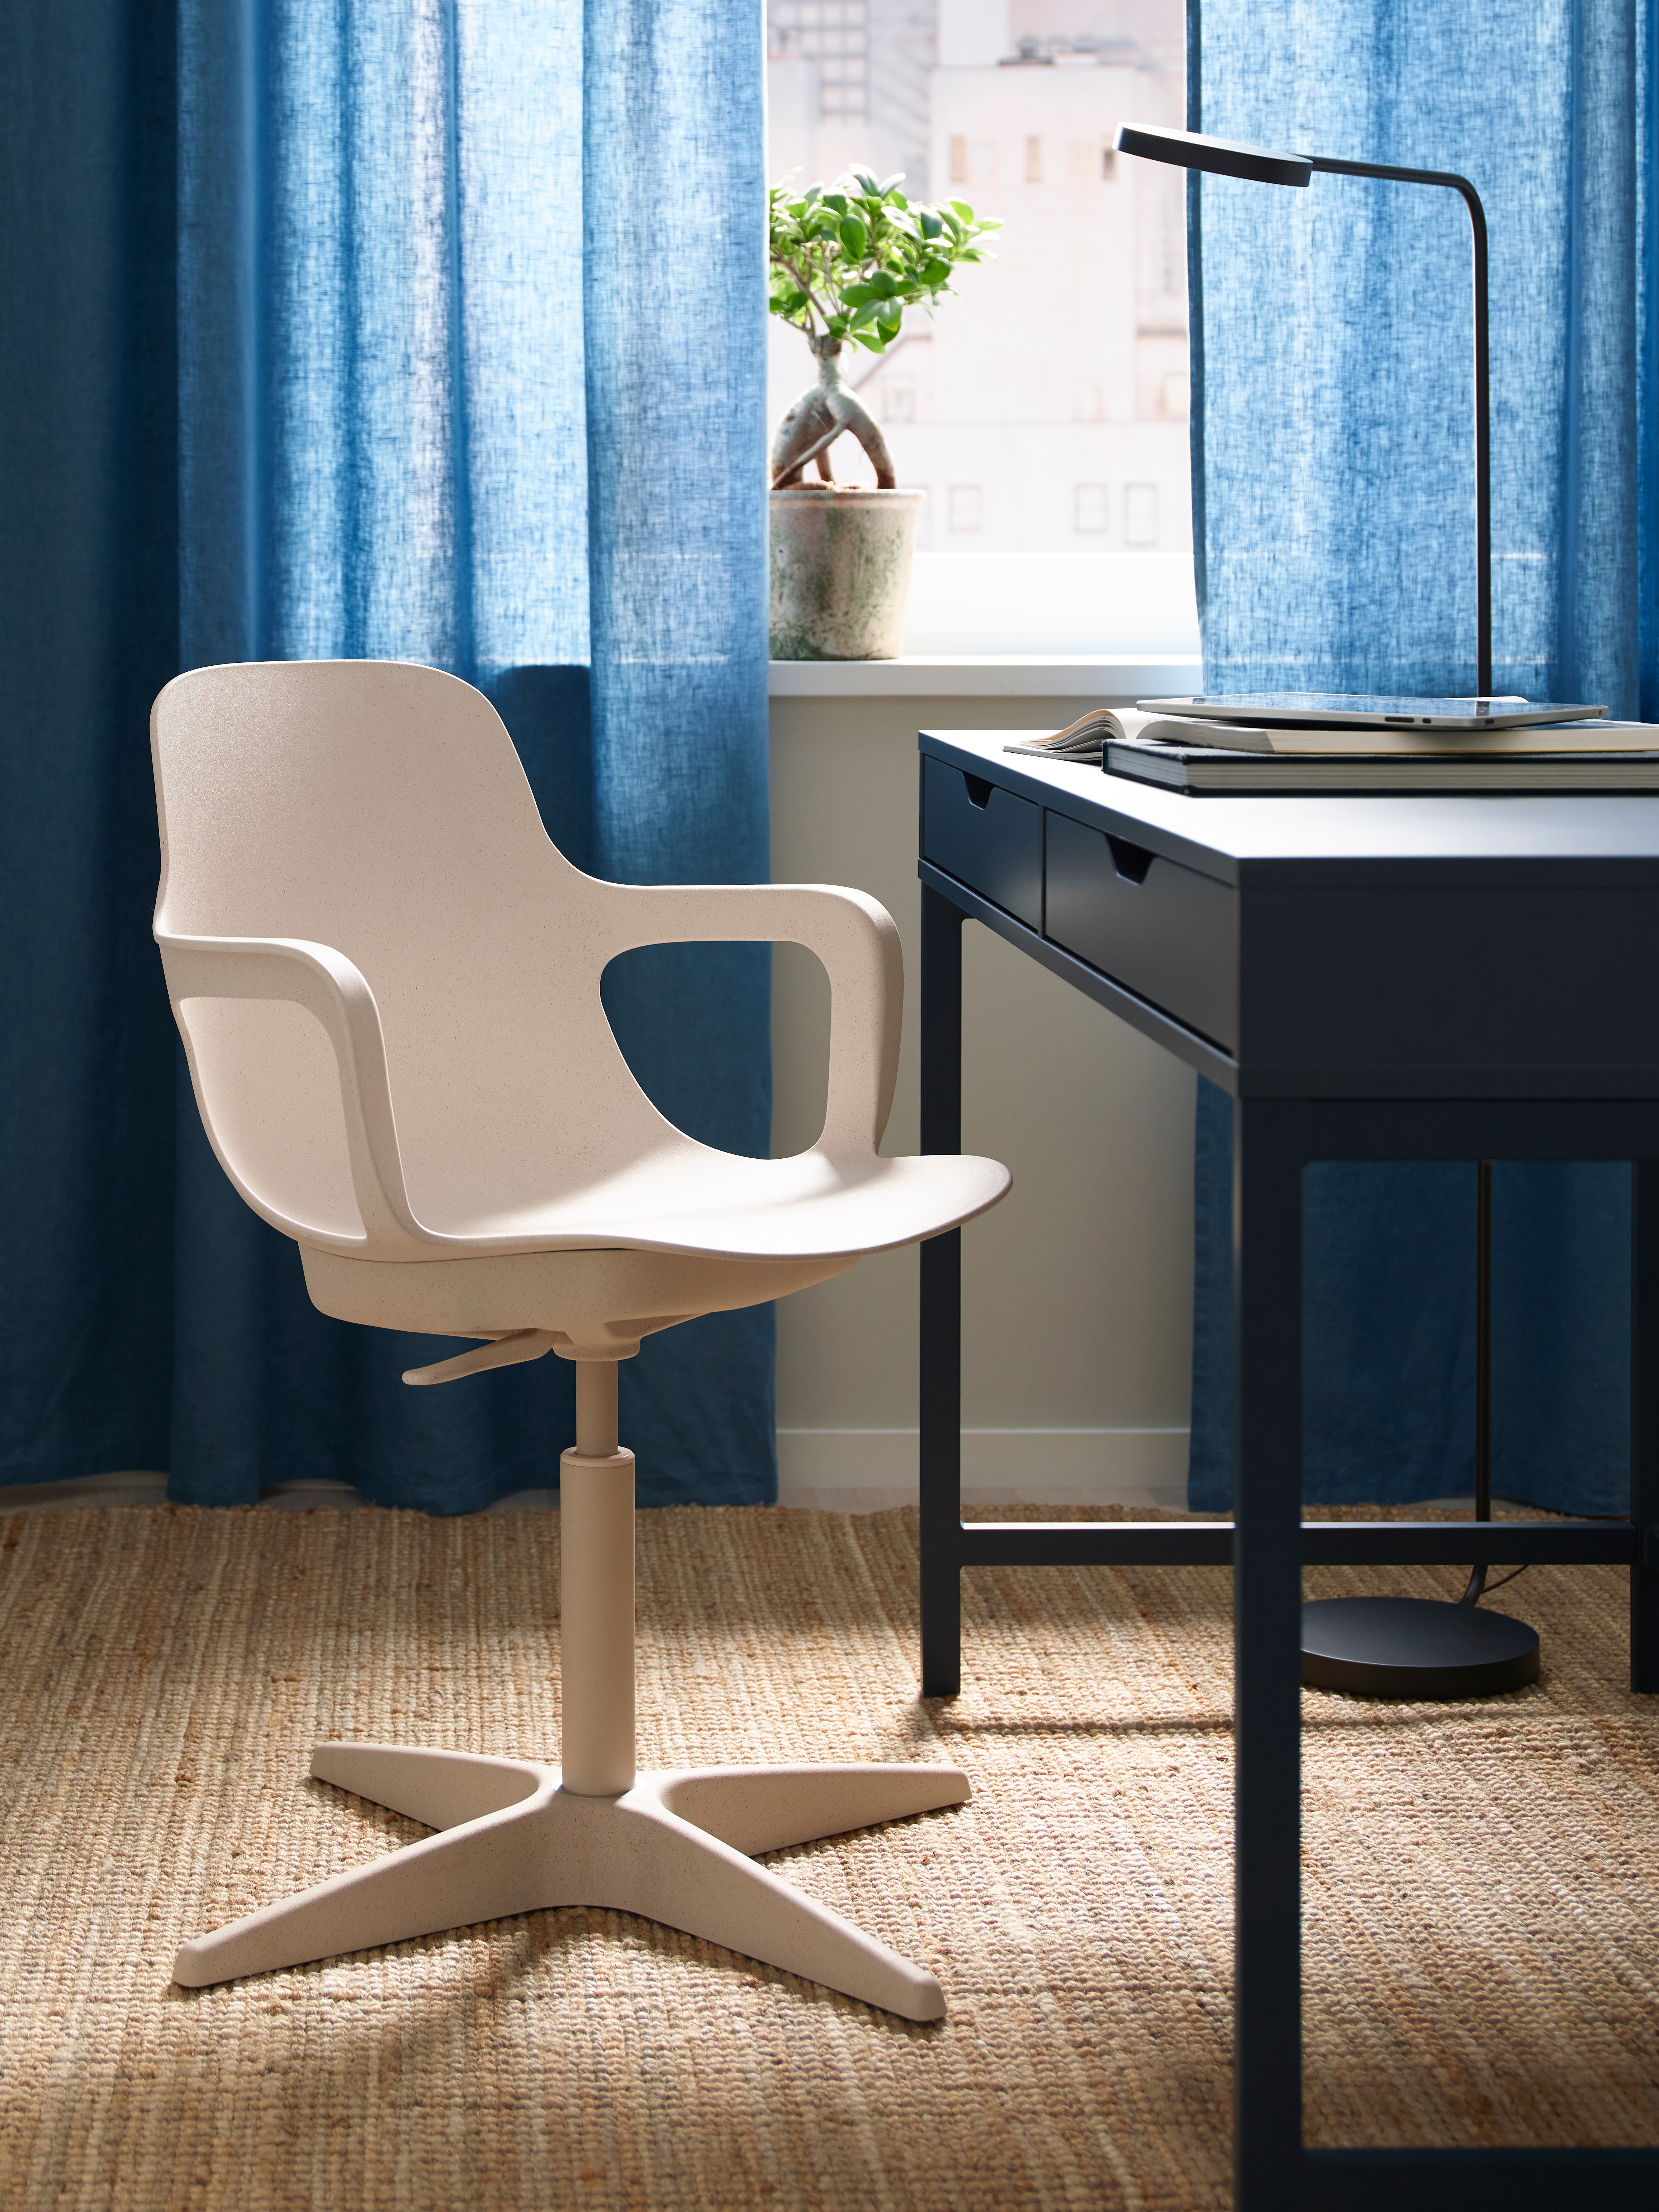 A white/beige ODGER swivel chair is on a jute rug by a blue desk, in front of a curtained window. The desk has books on it.